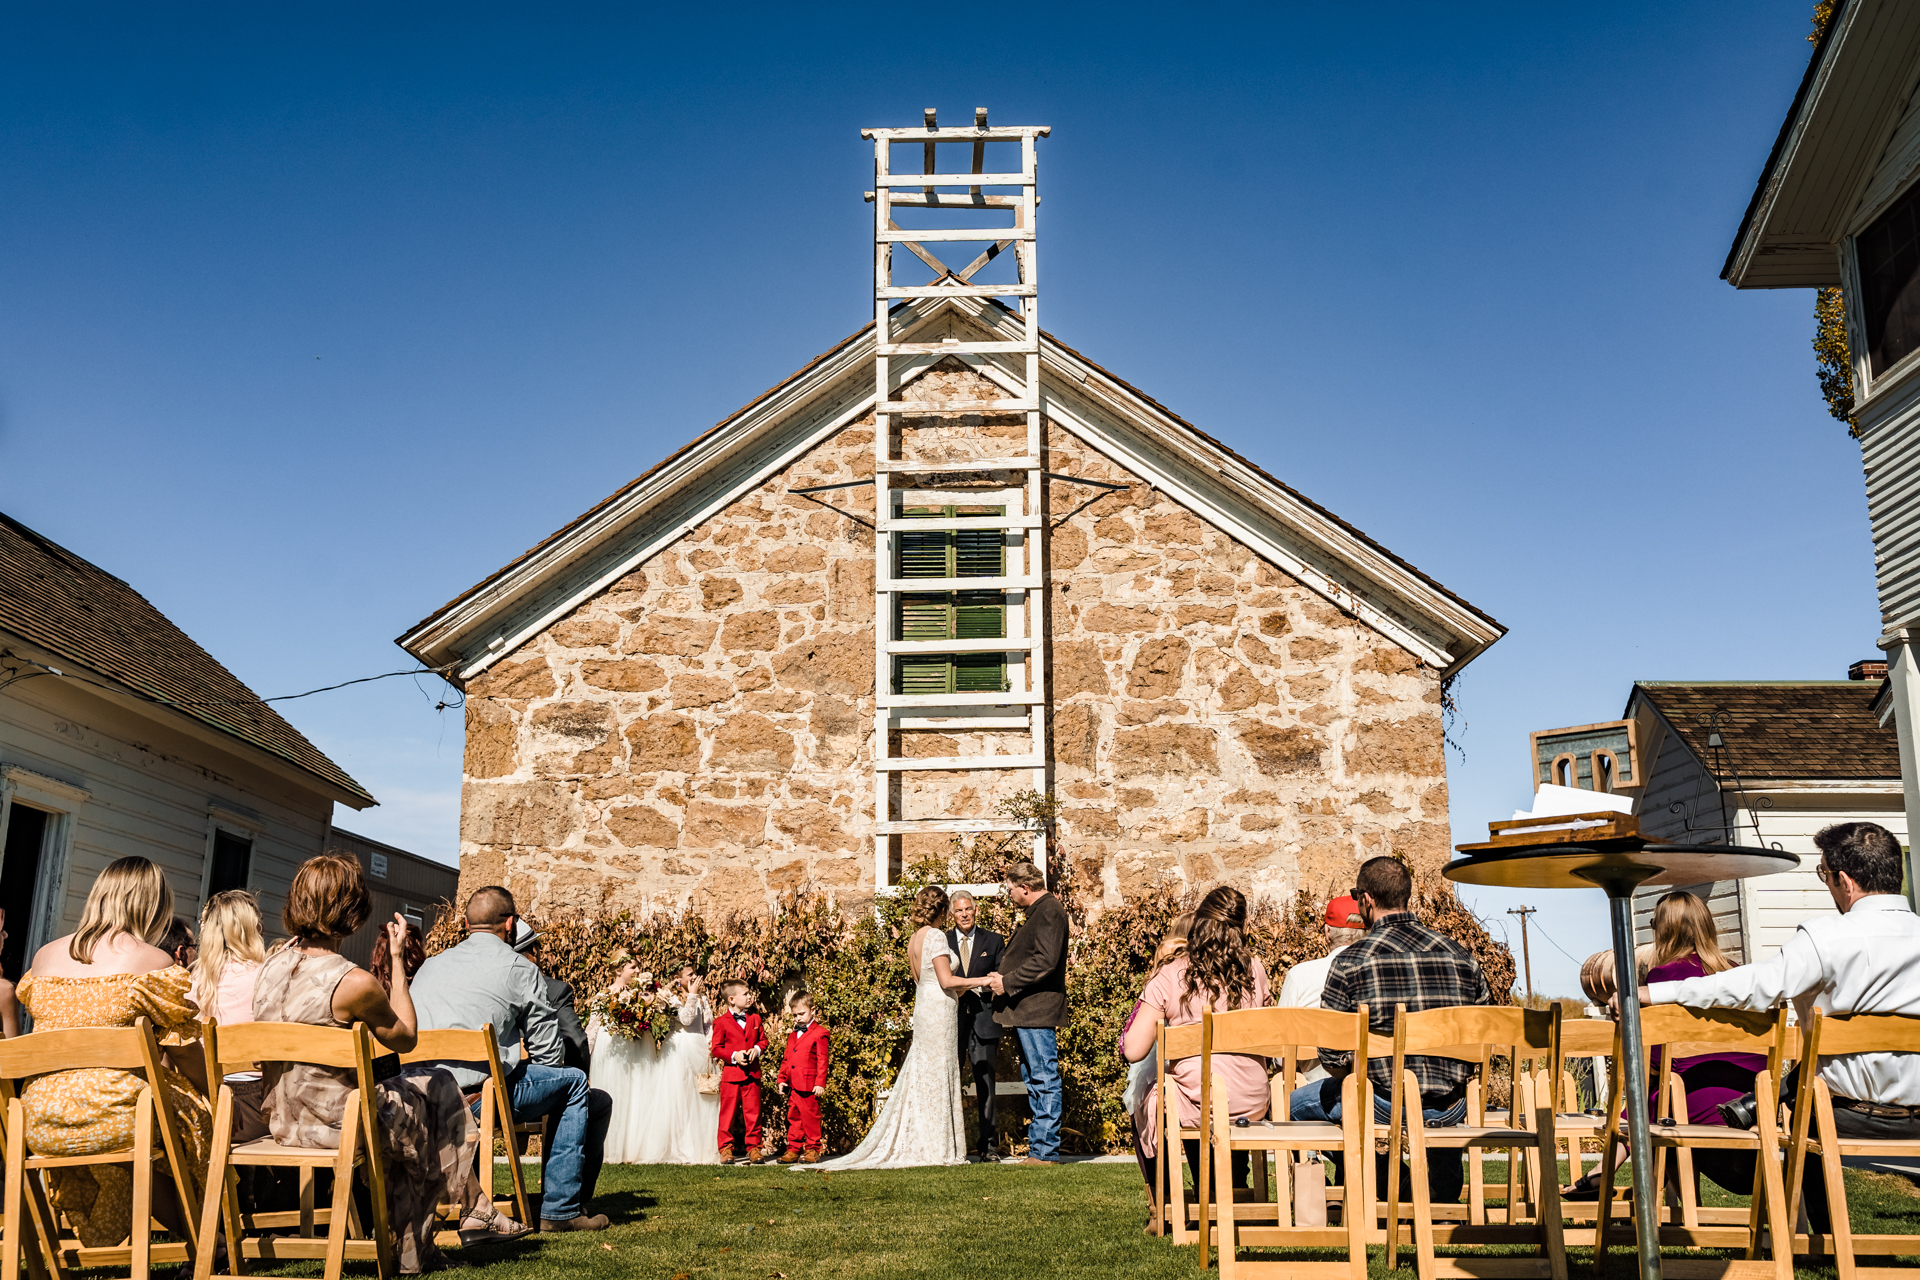 Dangberg Home Ranch Historic Park Wedding Pictures | The ceremony was intimate